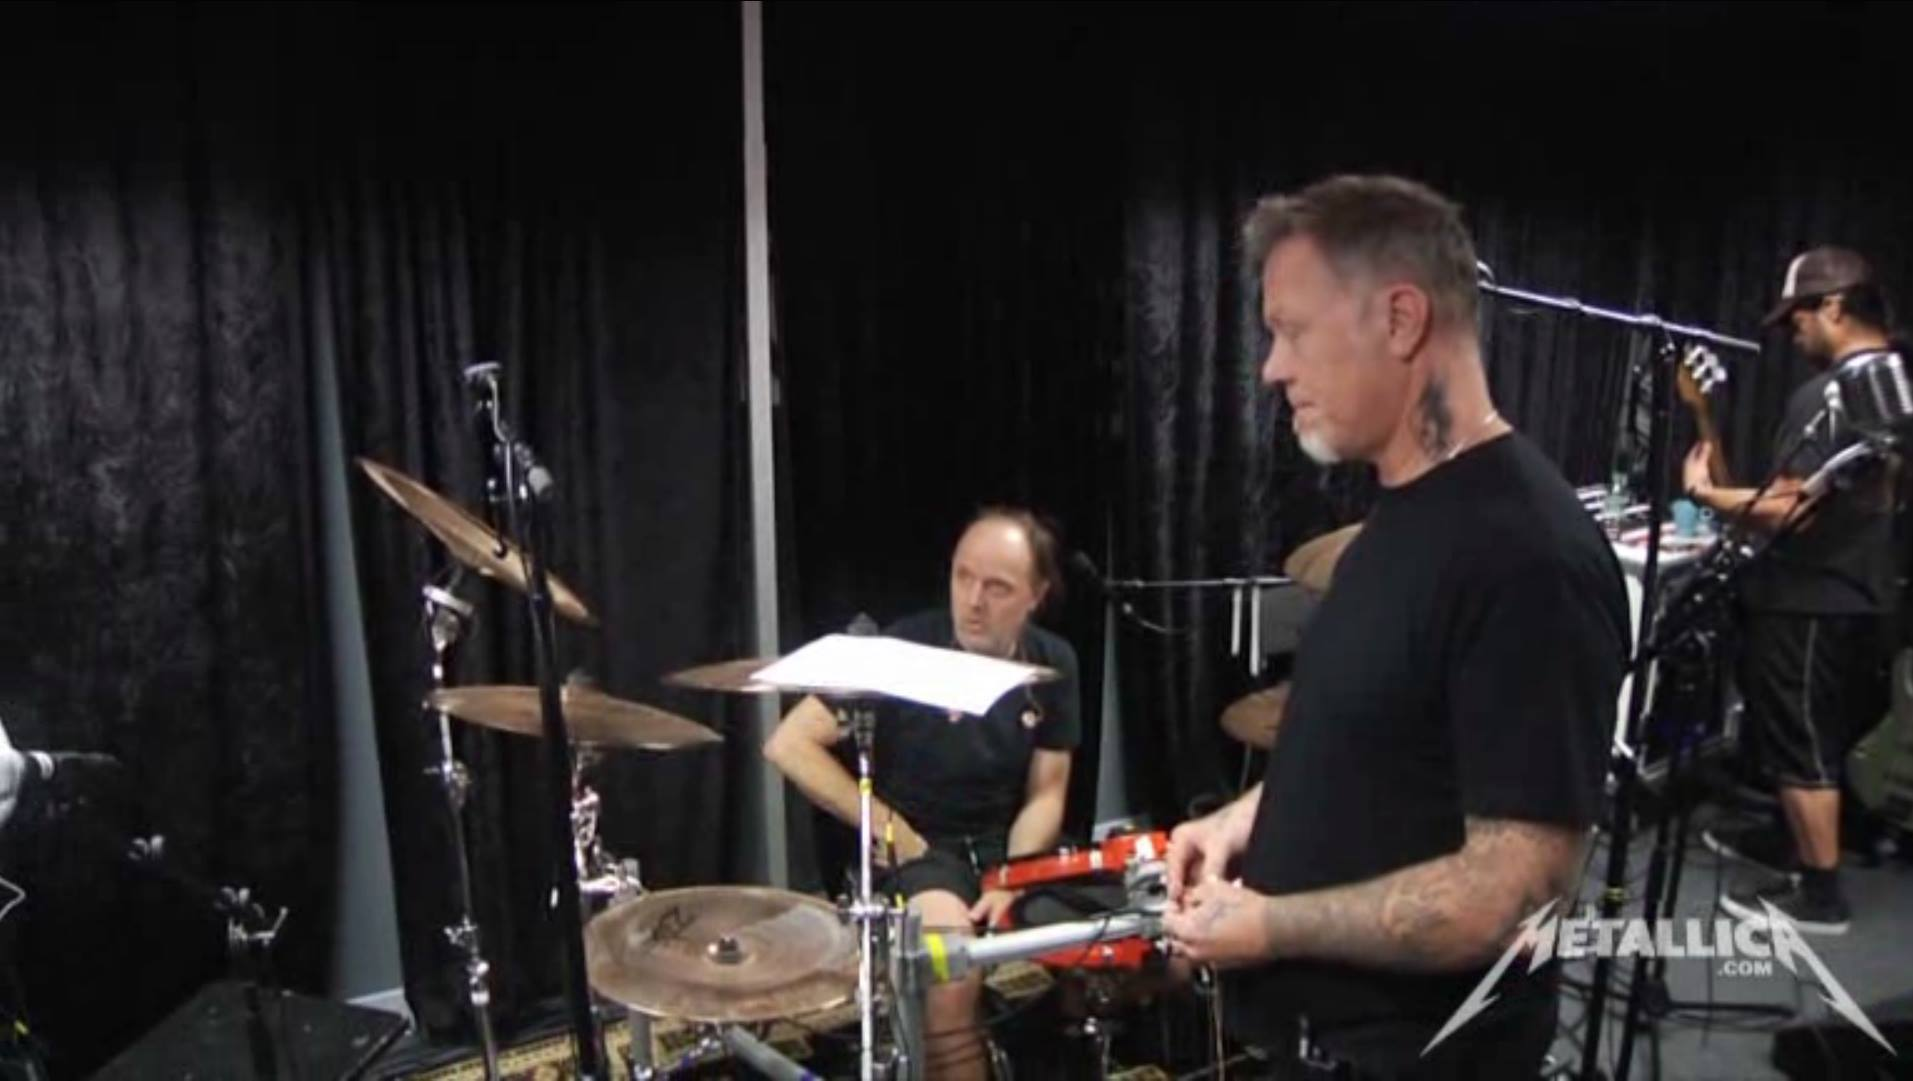 Foto-Lars-Ulrich-rehearsal-room-Band-Metallica-2Box-drumIt-Five